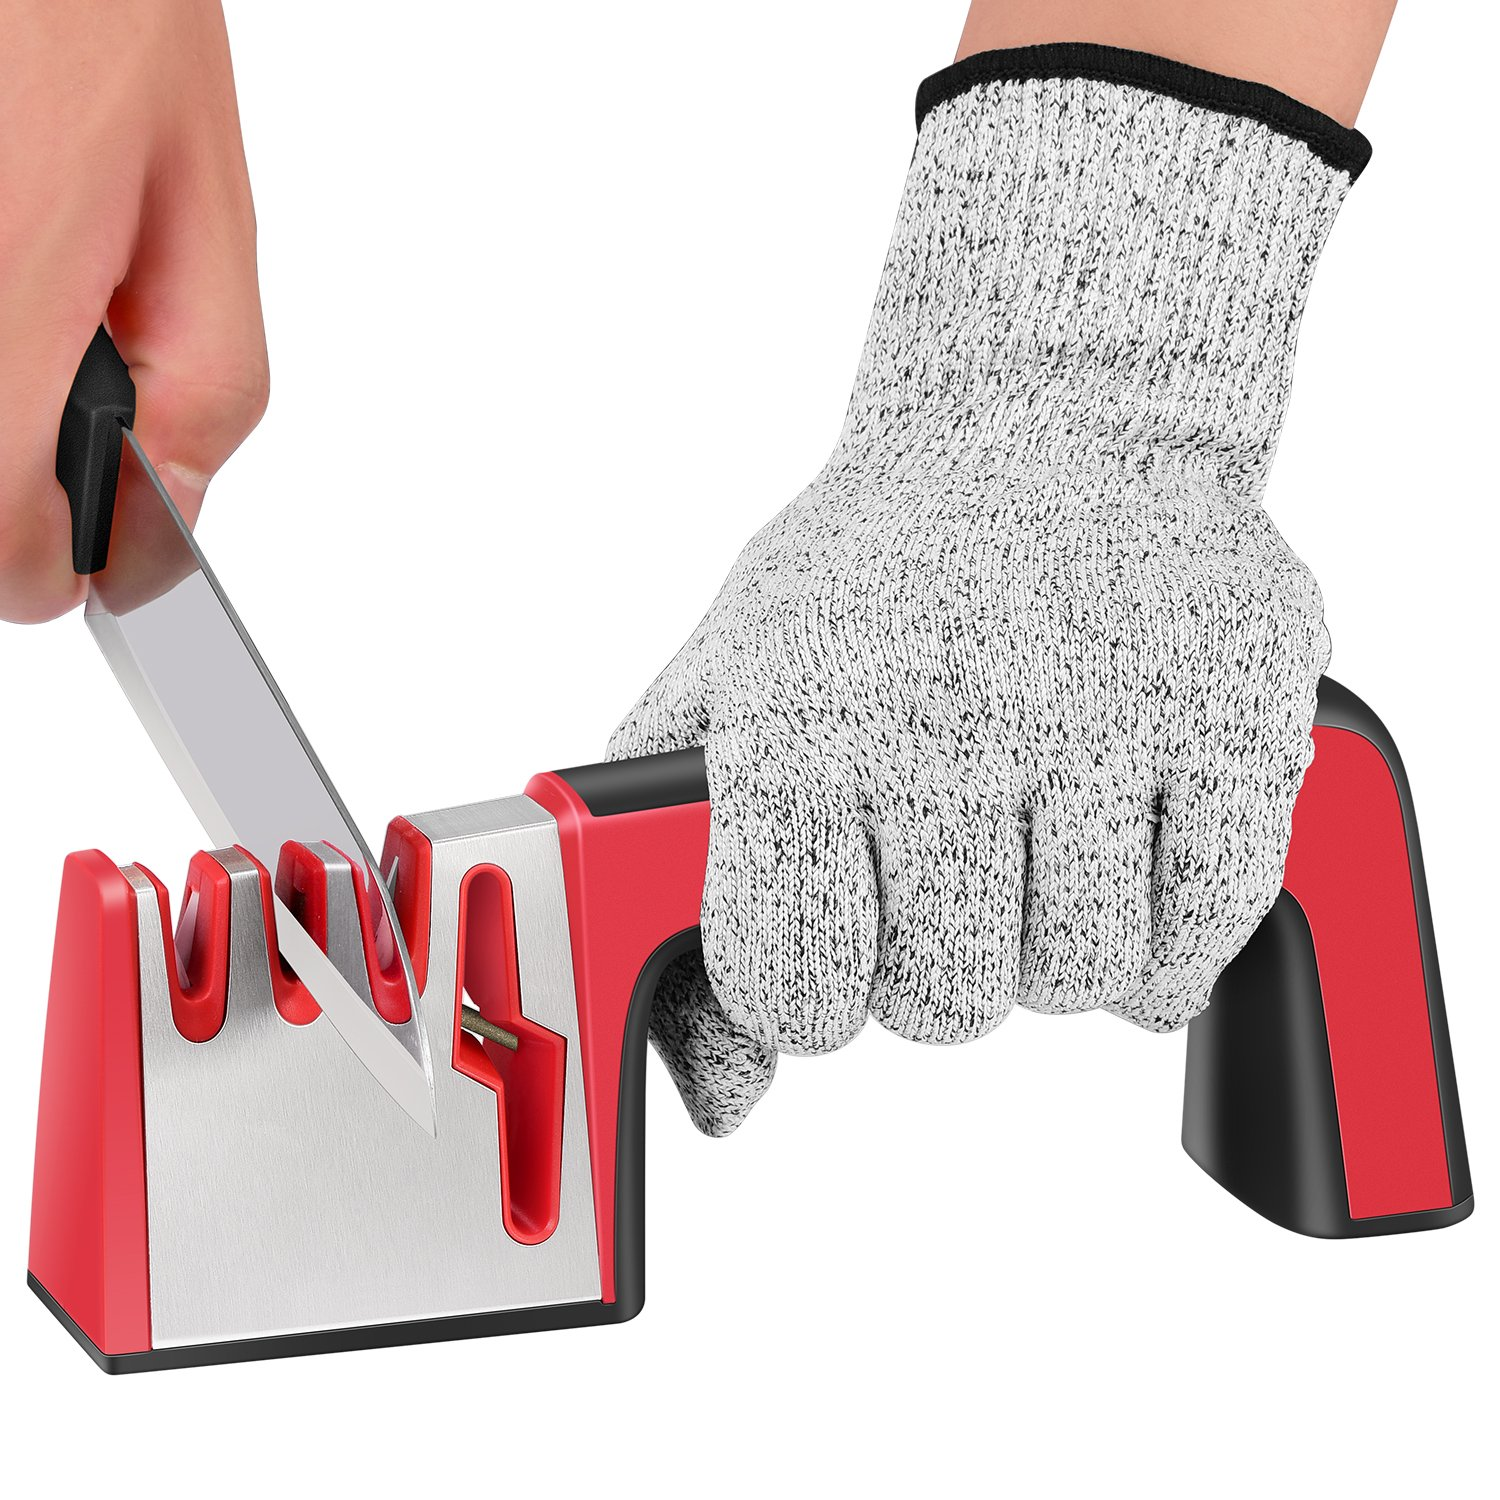 DeYoun Kitchen Knife Sharpeners, Professional 4-in-1 Knife Sharpening Tool Helps Repair, Restore and Polish Your Kitchen Knives & Scissors, Quick & Easy to Use - Cut Resistant Gloves Included. RTUK-KC-01